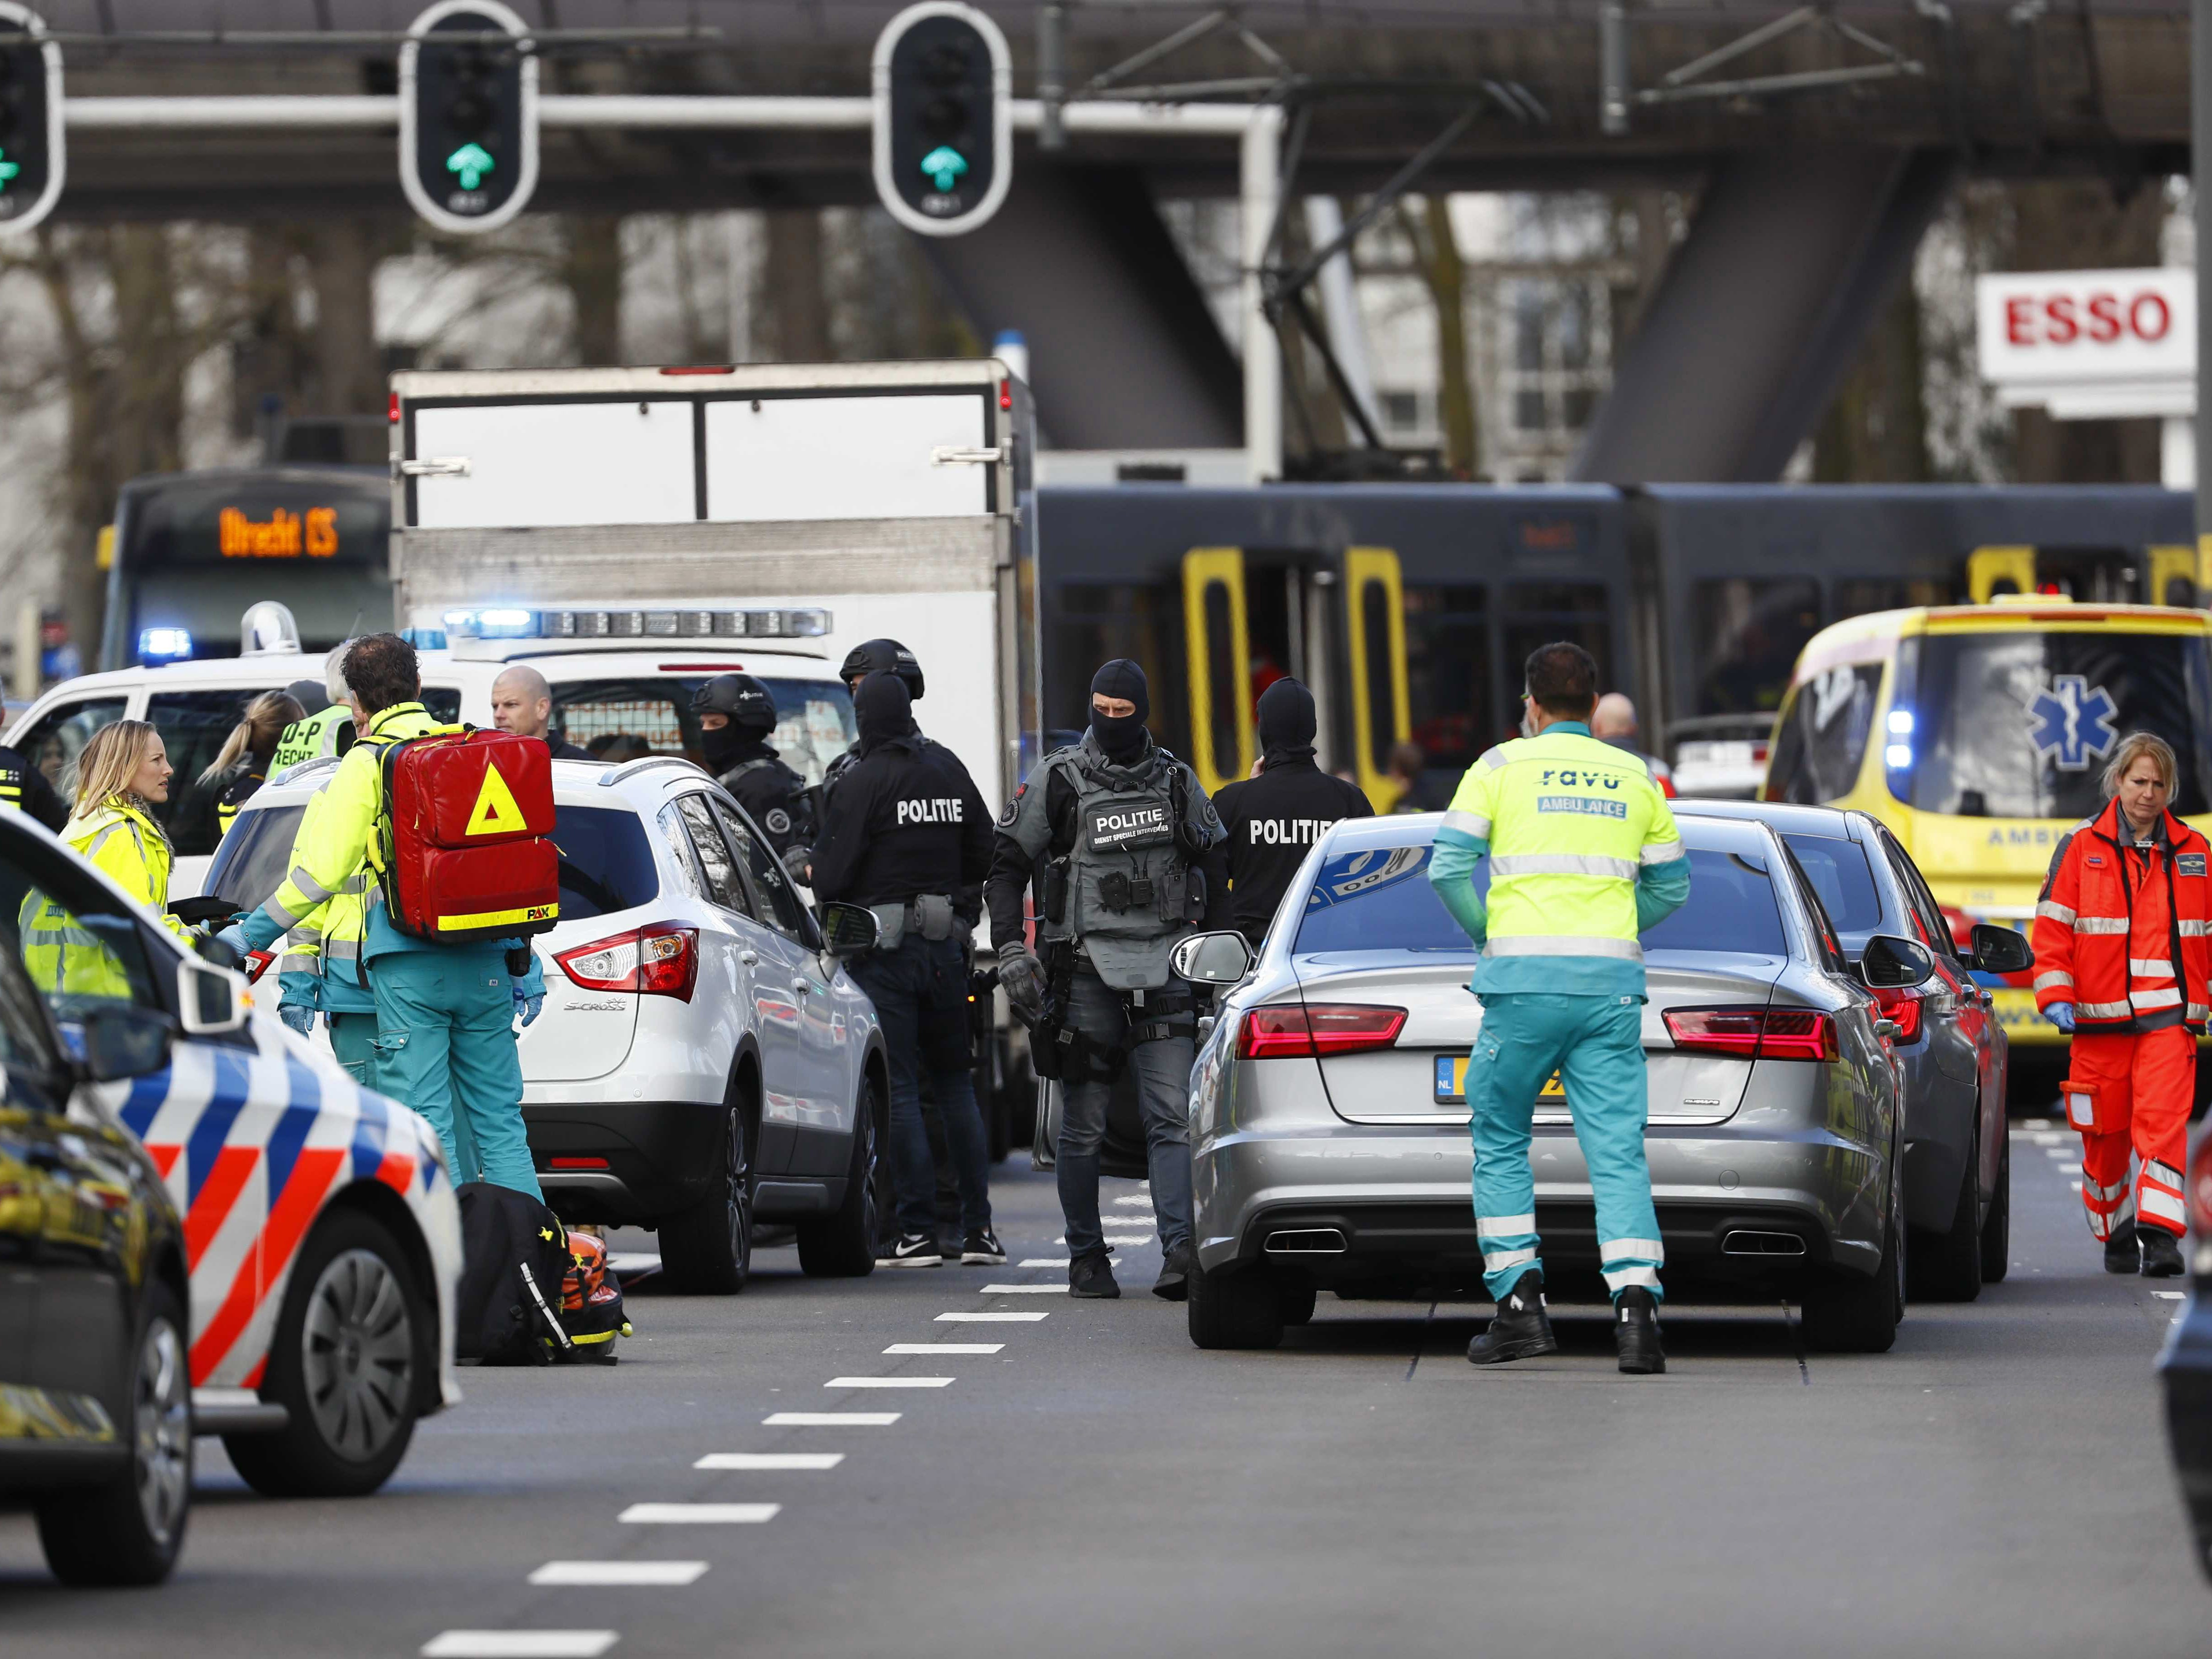 Emergency services at the 24 Oktoberplace where a shooting took place in Utrecht, The Netherlands, March 18, 2019.